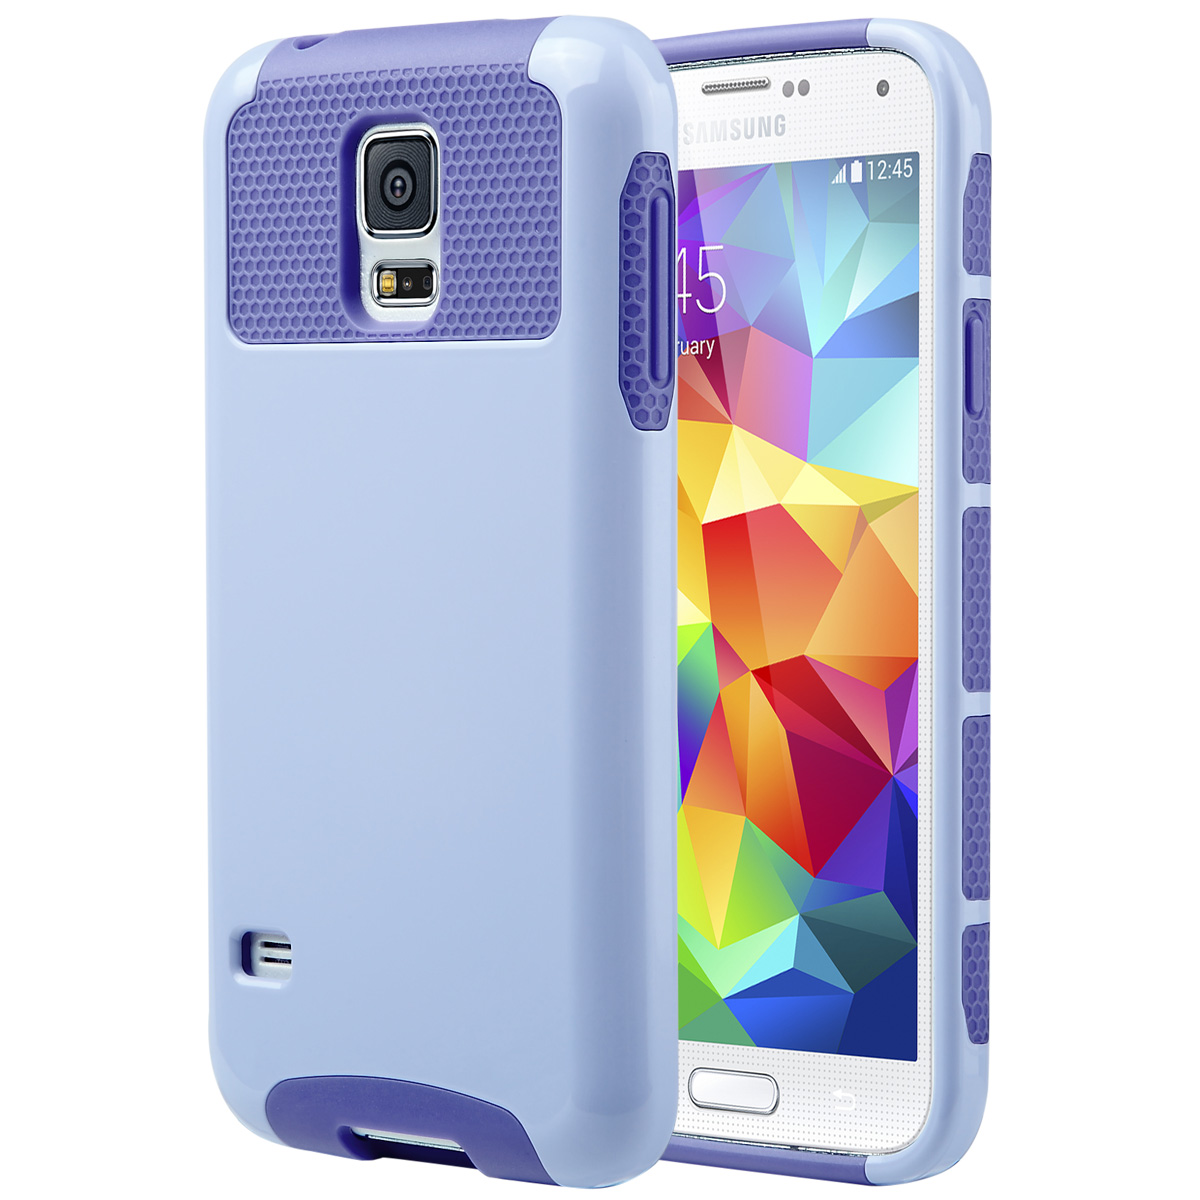 Galaxy S5 Case, S5 Case, ULAK Dual Layer Slim Hybrid Protective Case Cover for Samsung Galaxy S5 SV i9600 [Plastic Hard Shell and Flexible TPU] - (Light Purple/Purple)